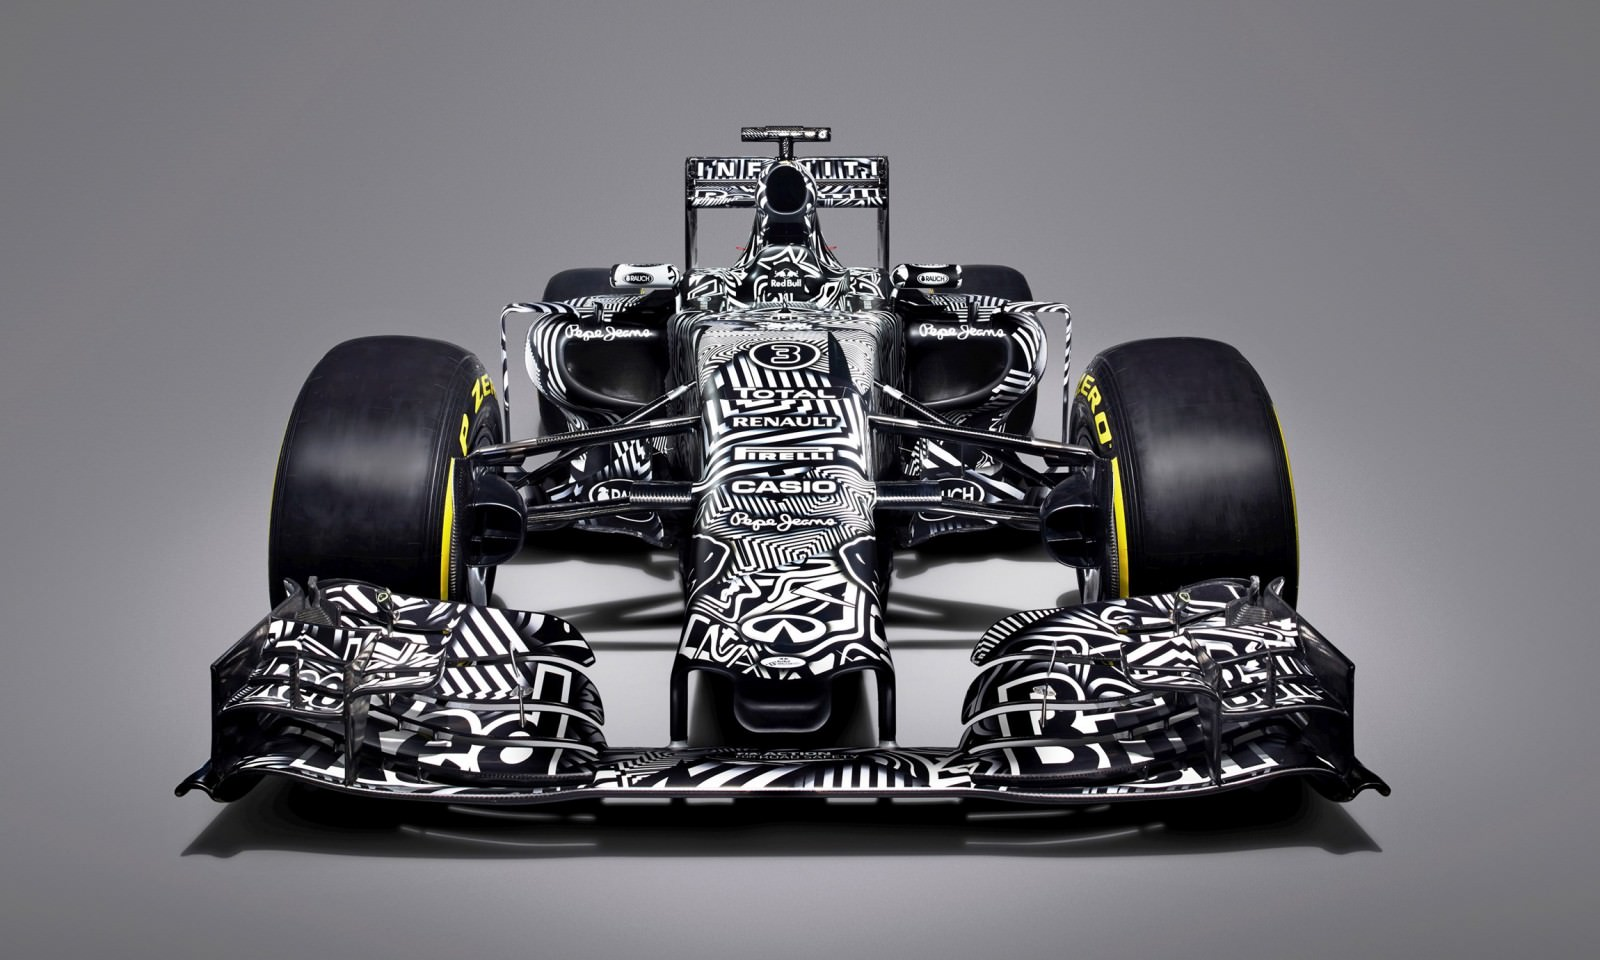 Infiniti Red Bull Racing RB11 photographed in Milton Keynes, UK